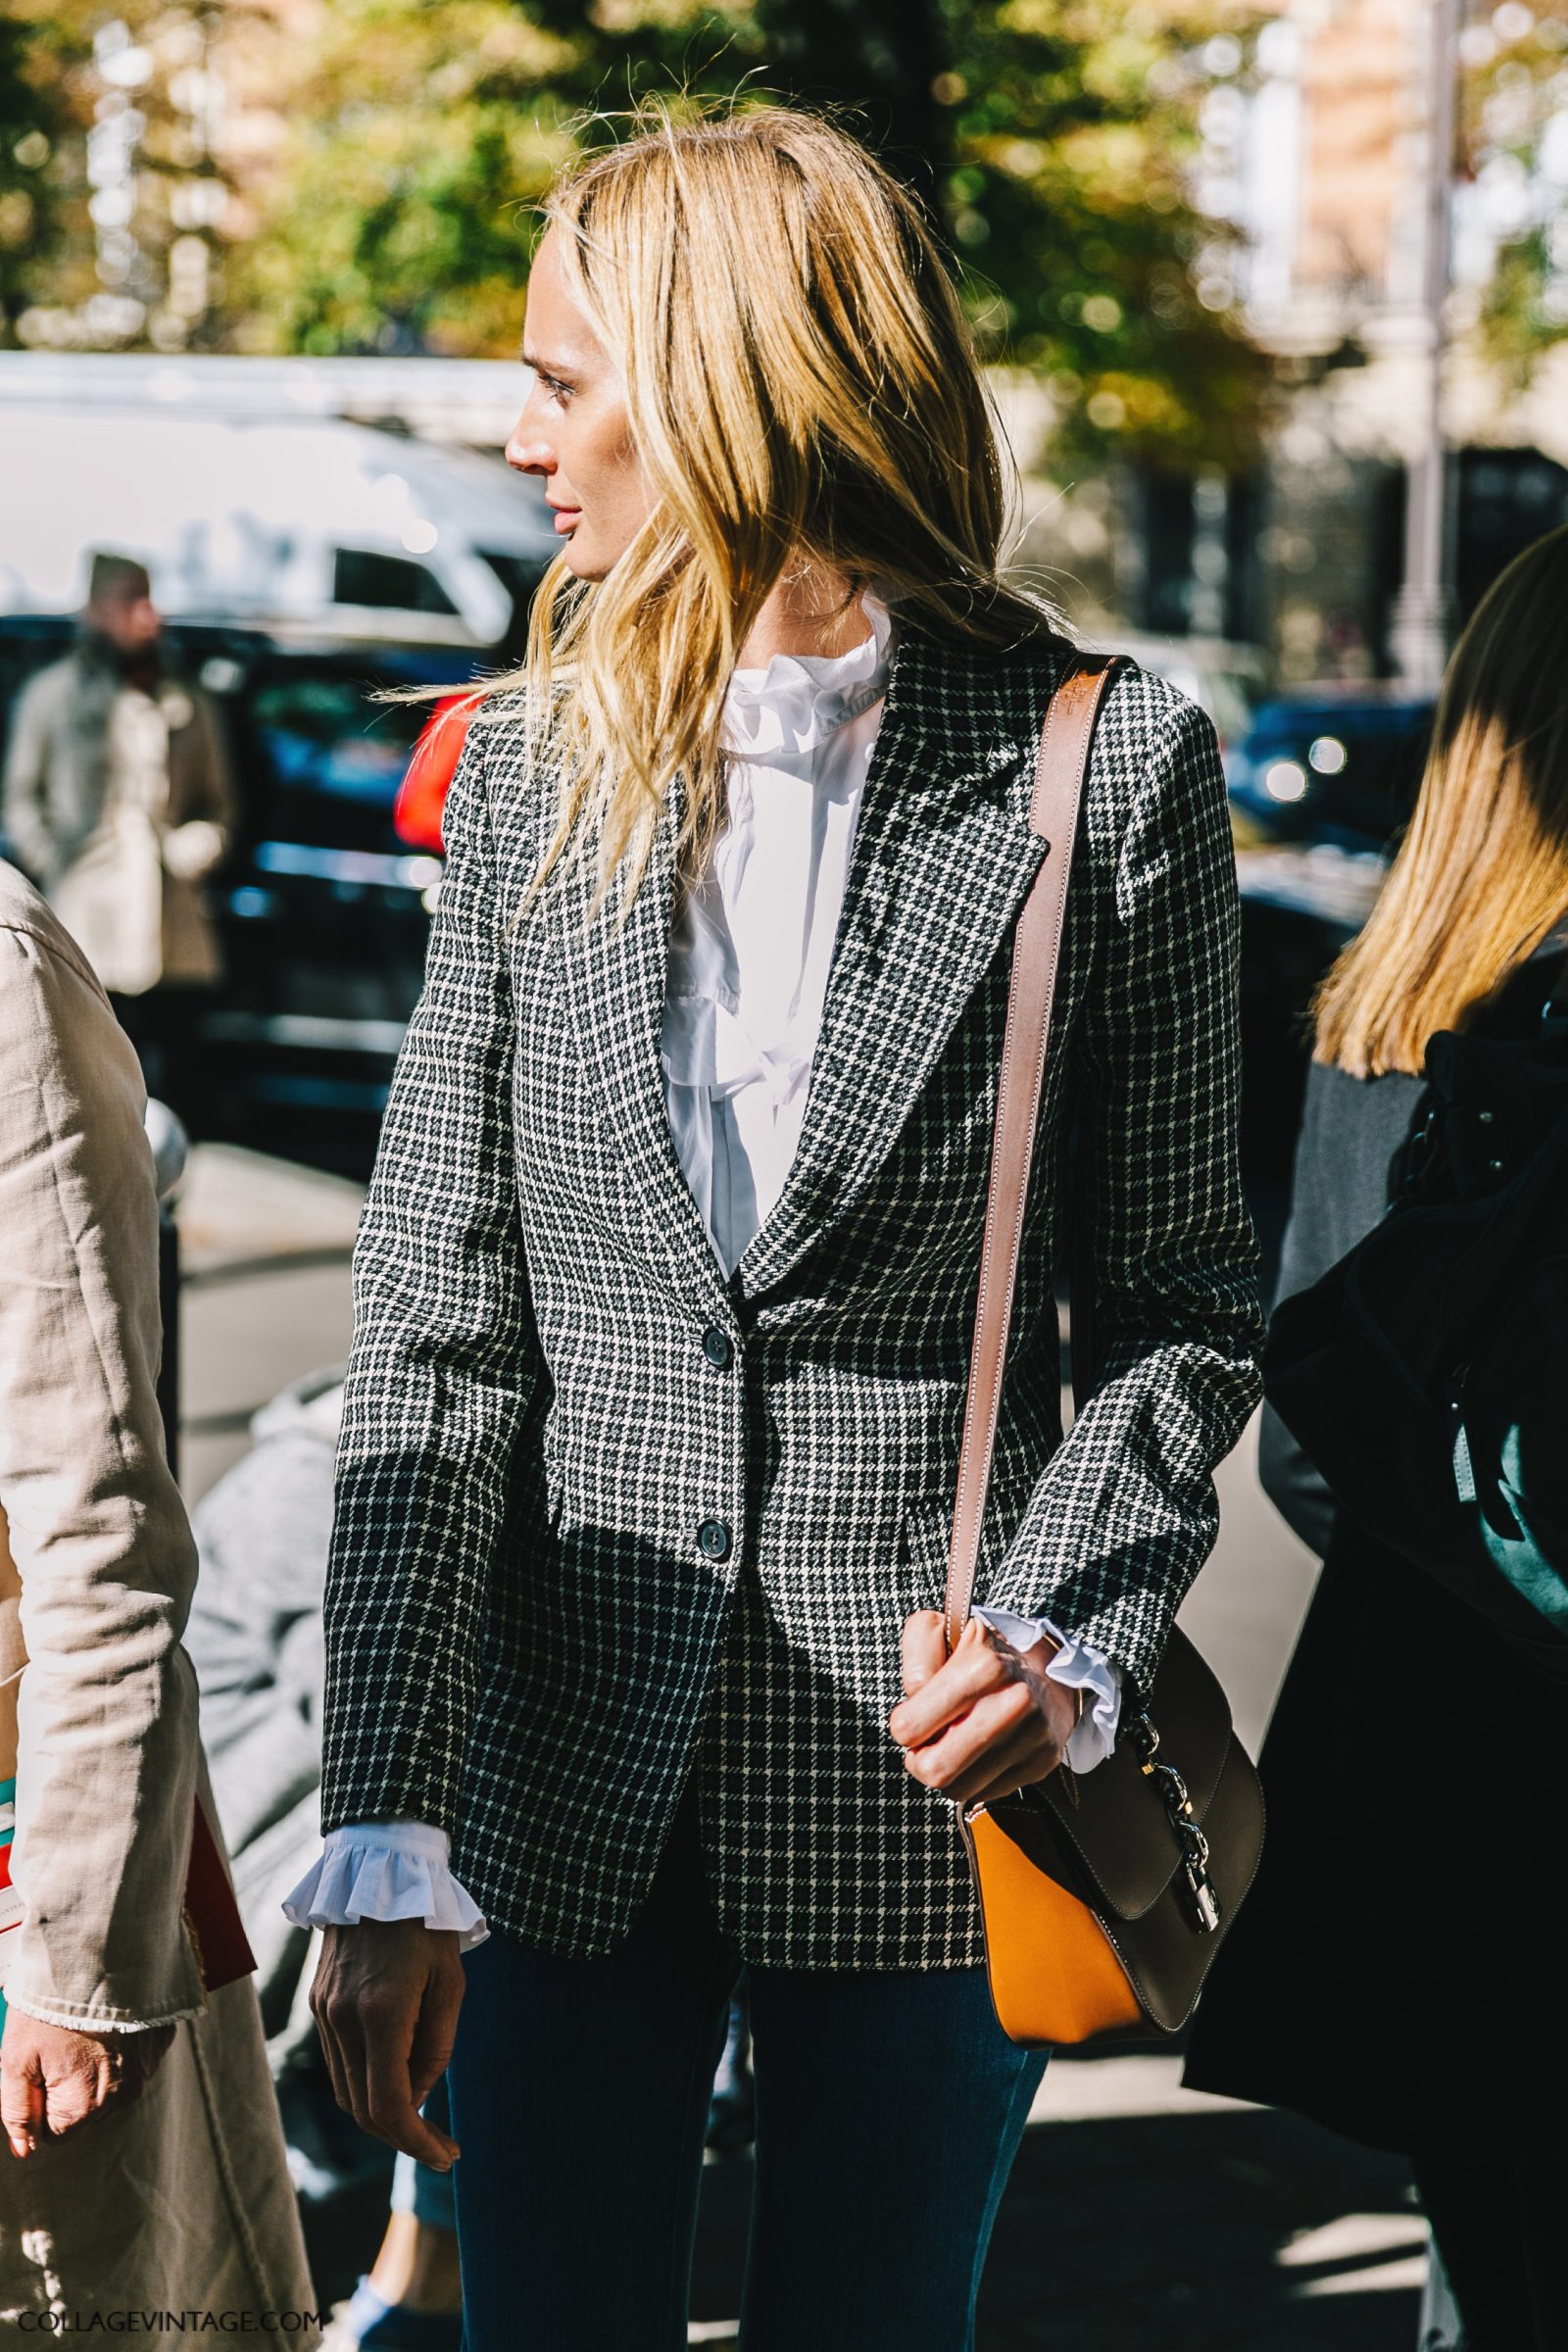 pfw-paris_fashion_week_ss17-street_style-outfit-collage_vintage-louis_vuitton-miu_miu-59